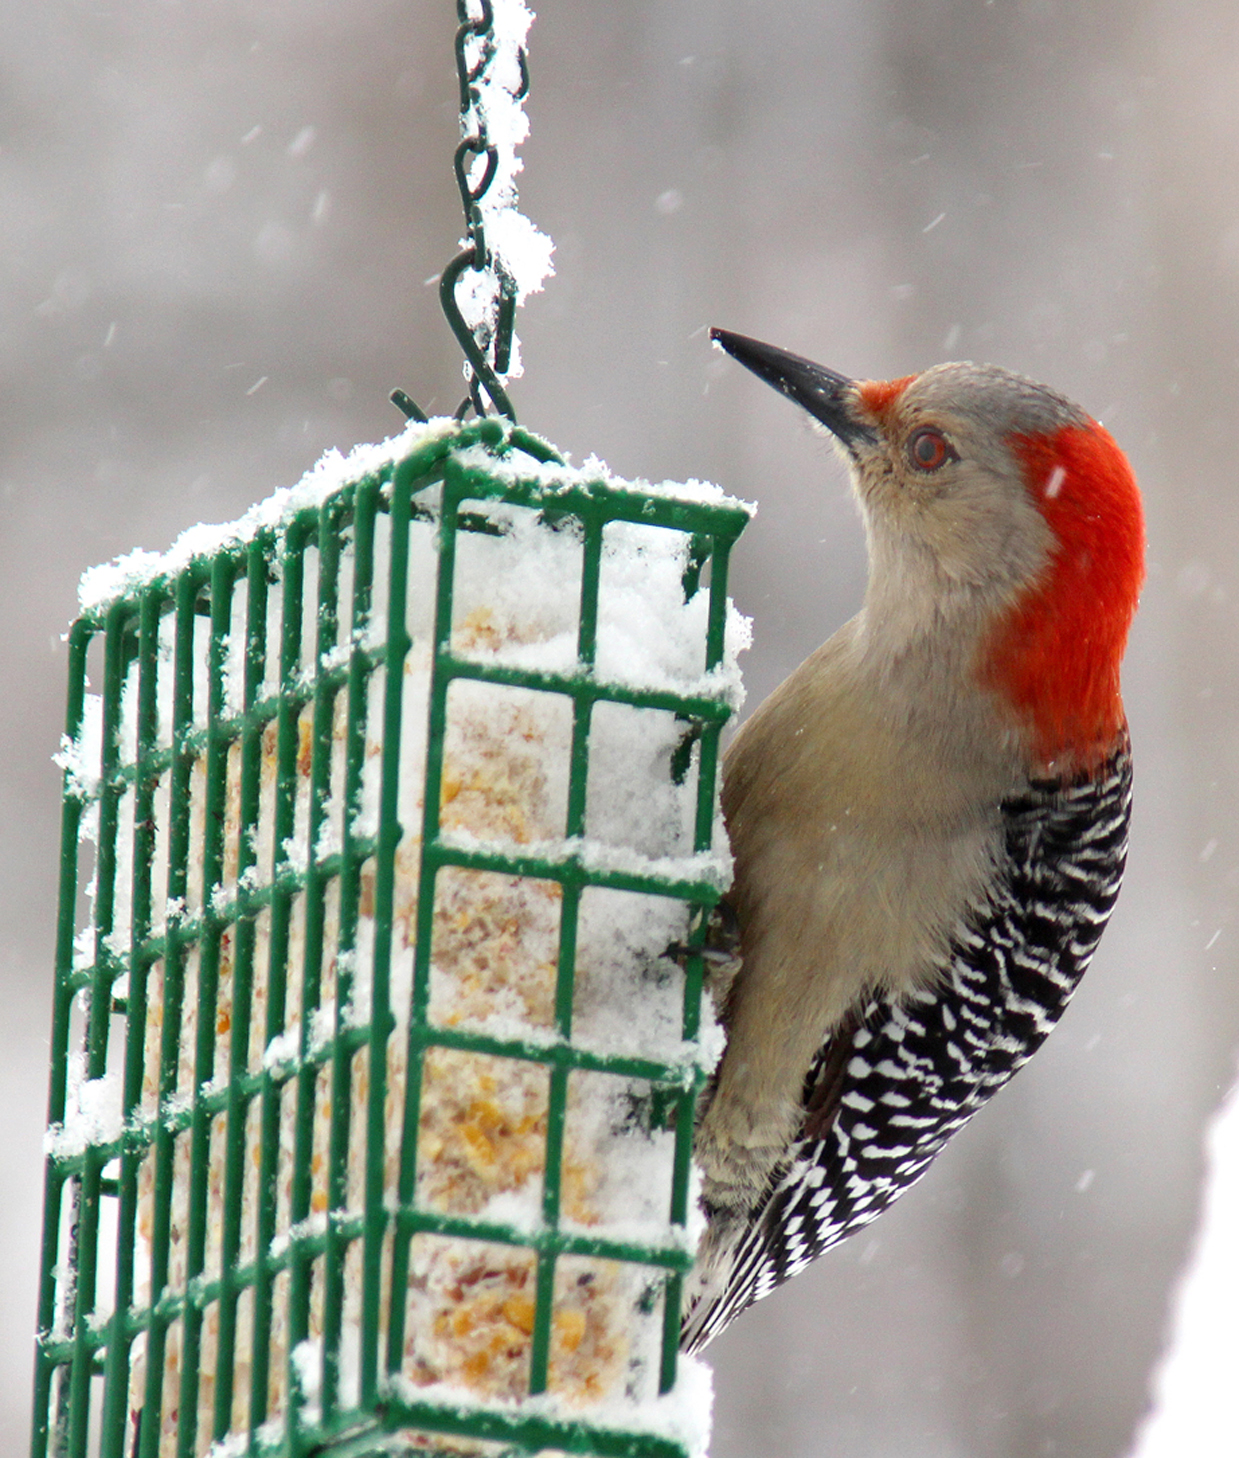 Photo by Chris Bosak A Red-bellied Woodpecker visits a suet feeder during a snow storm.